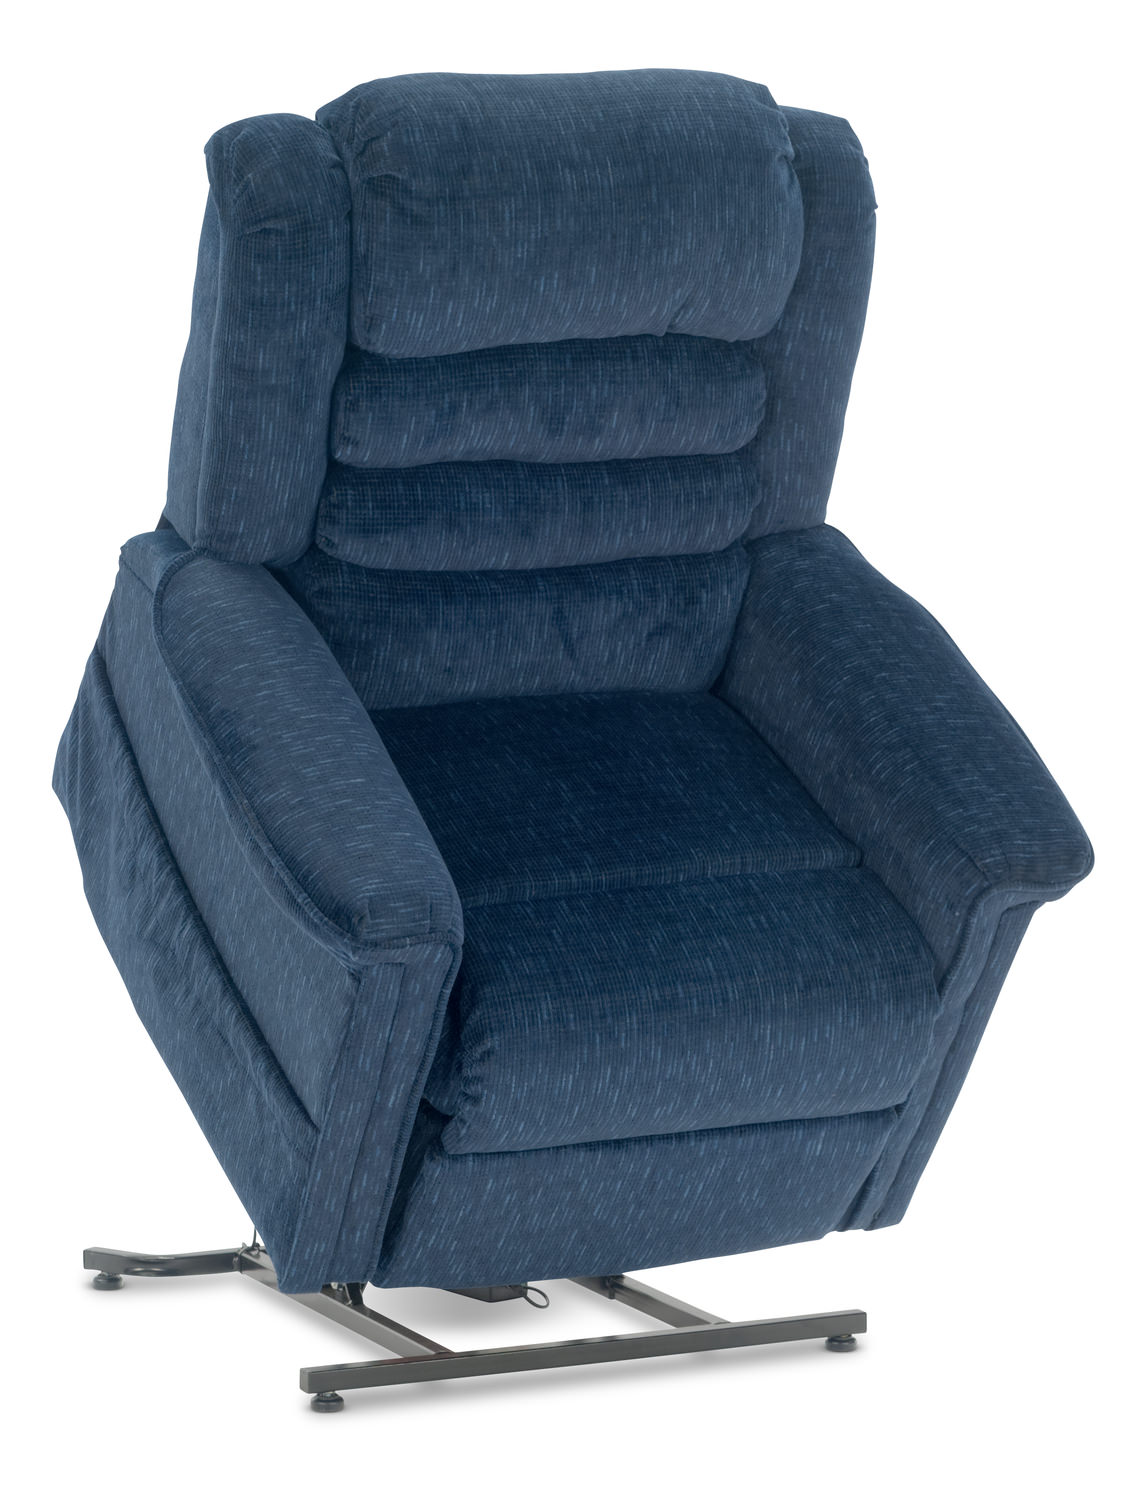 Youth Recliner Chair